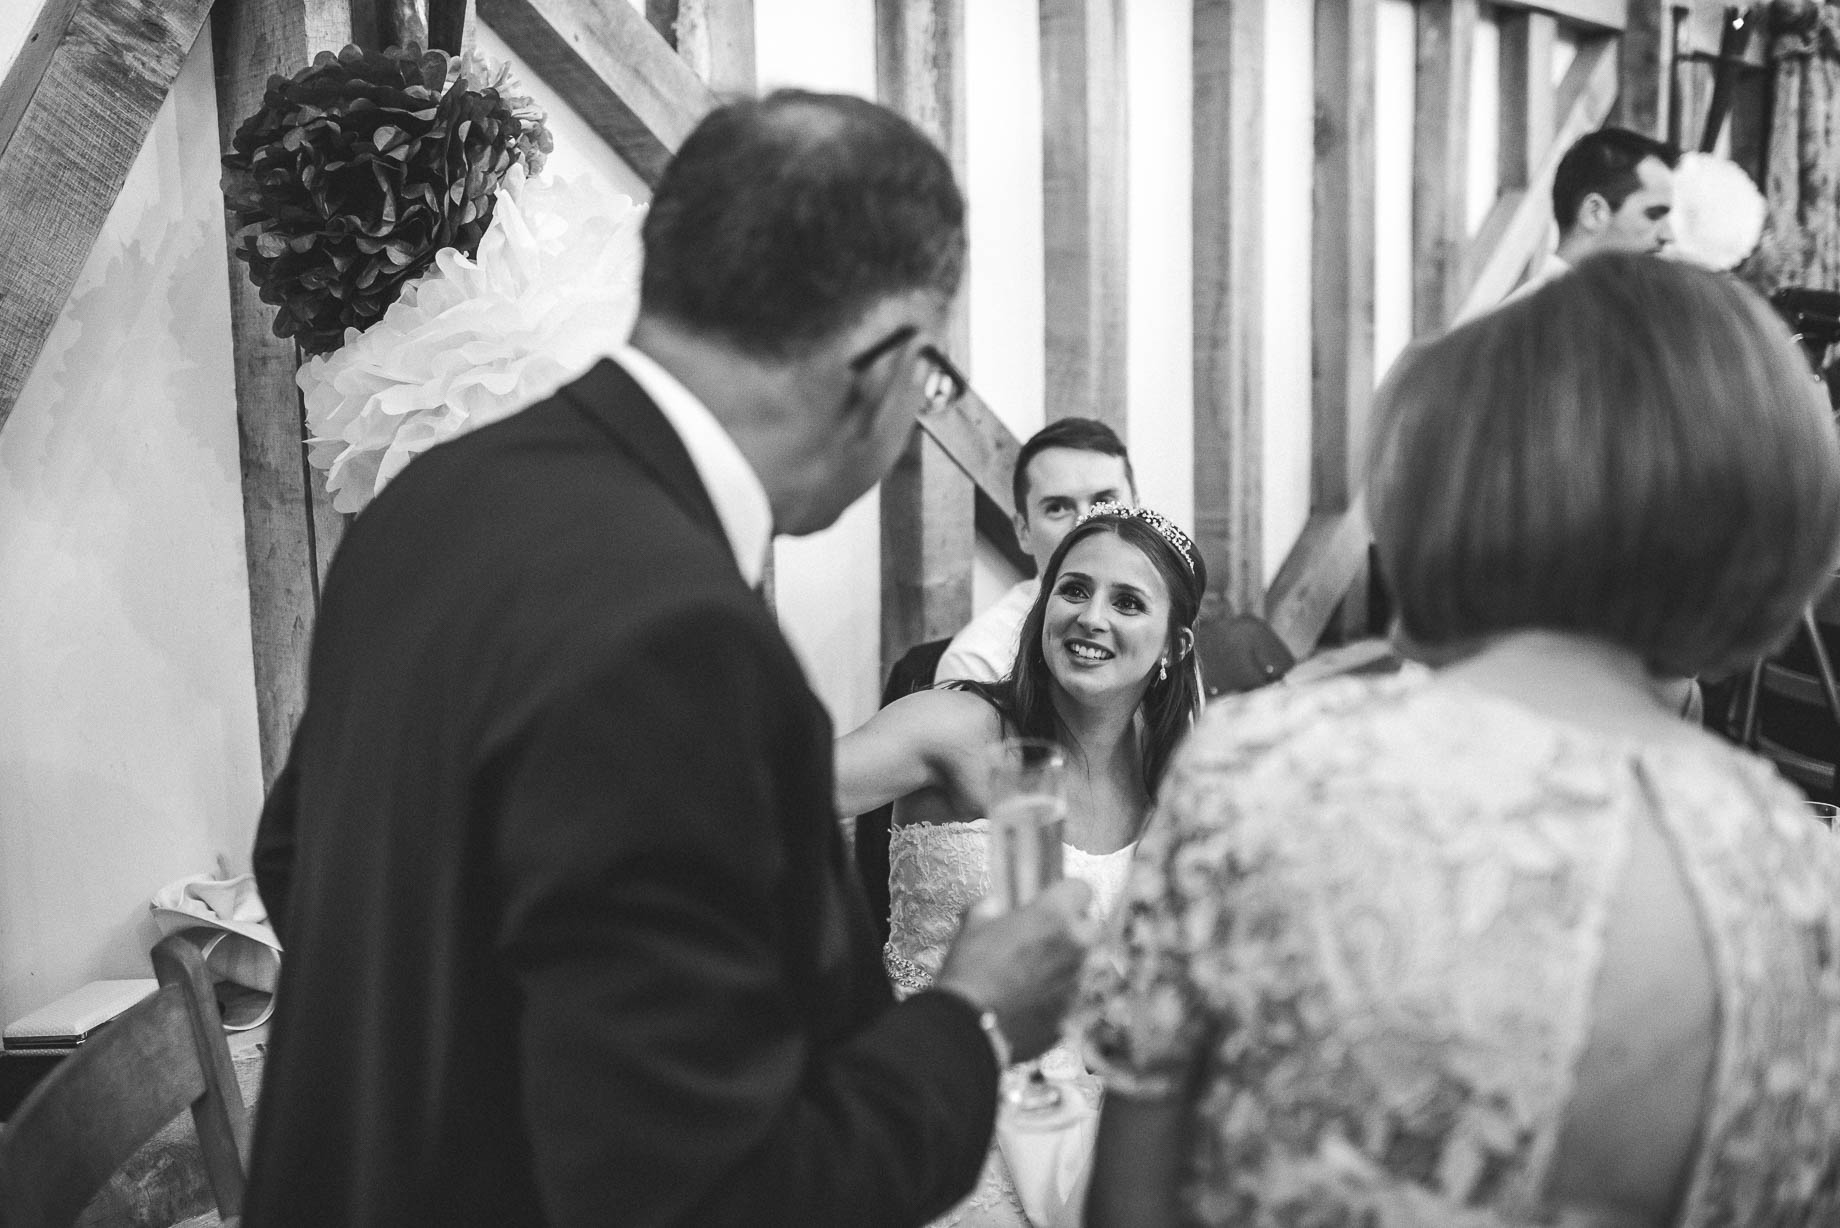 Gate Street Barn wedding photography - Guy Collier - Claire and Andy (138 of 192)